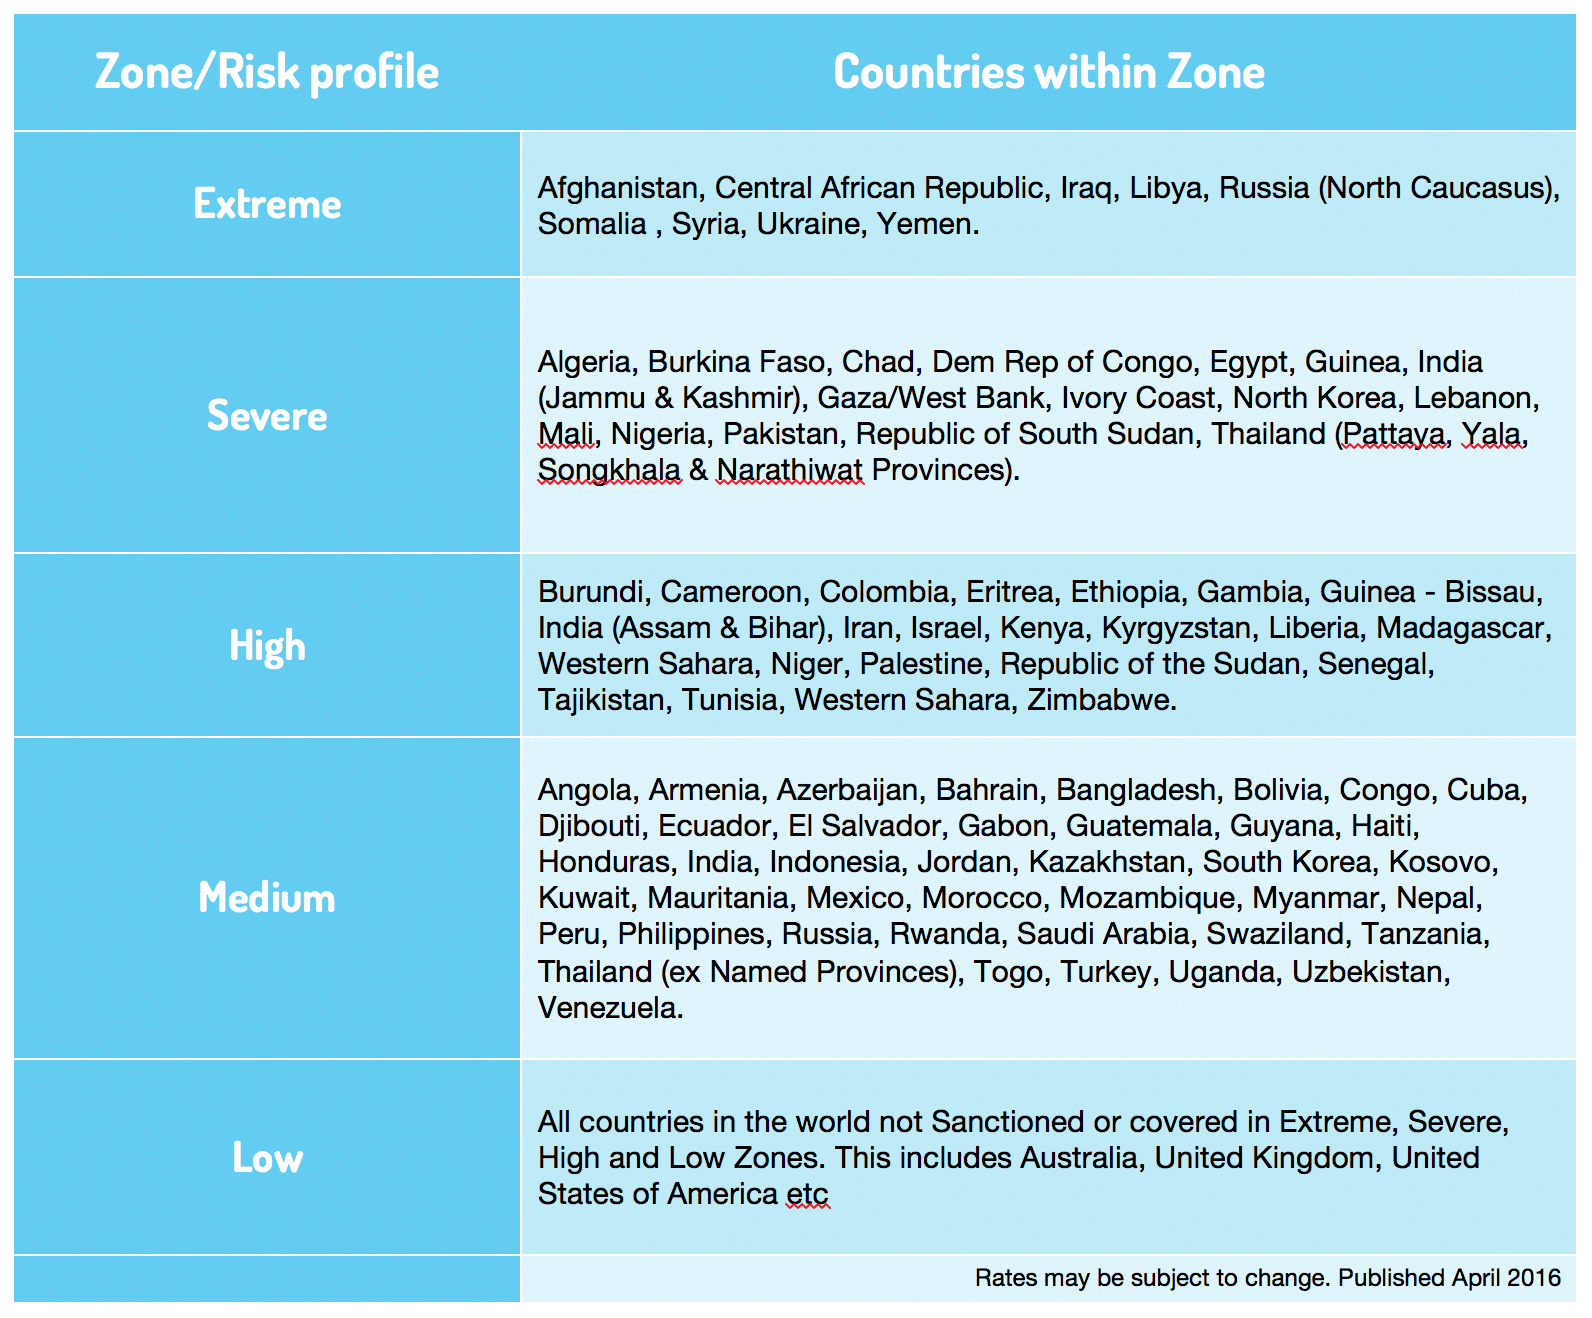 Insurance zone classification by Insurance for journalists